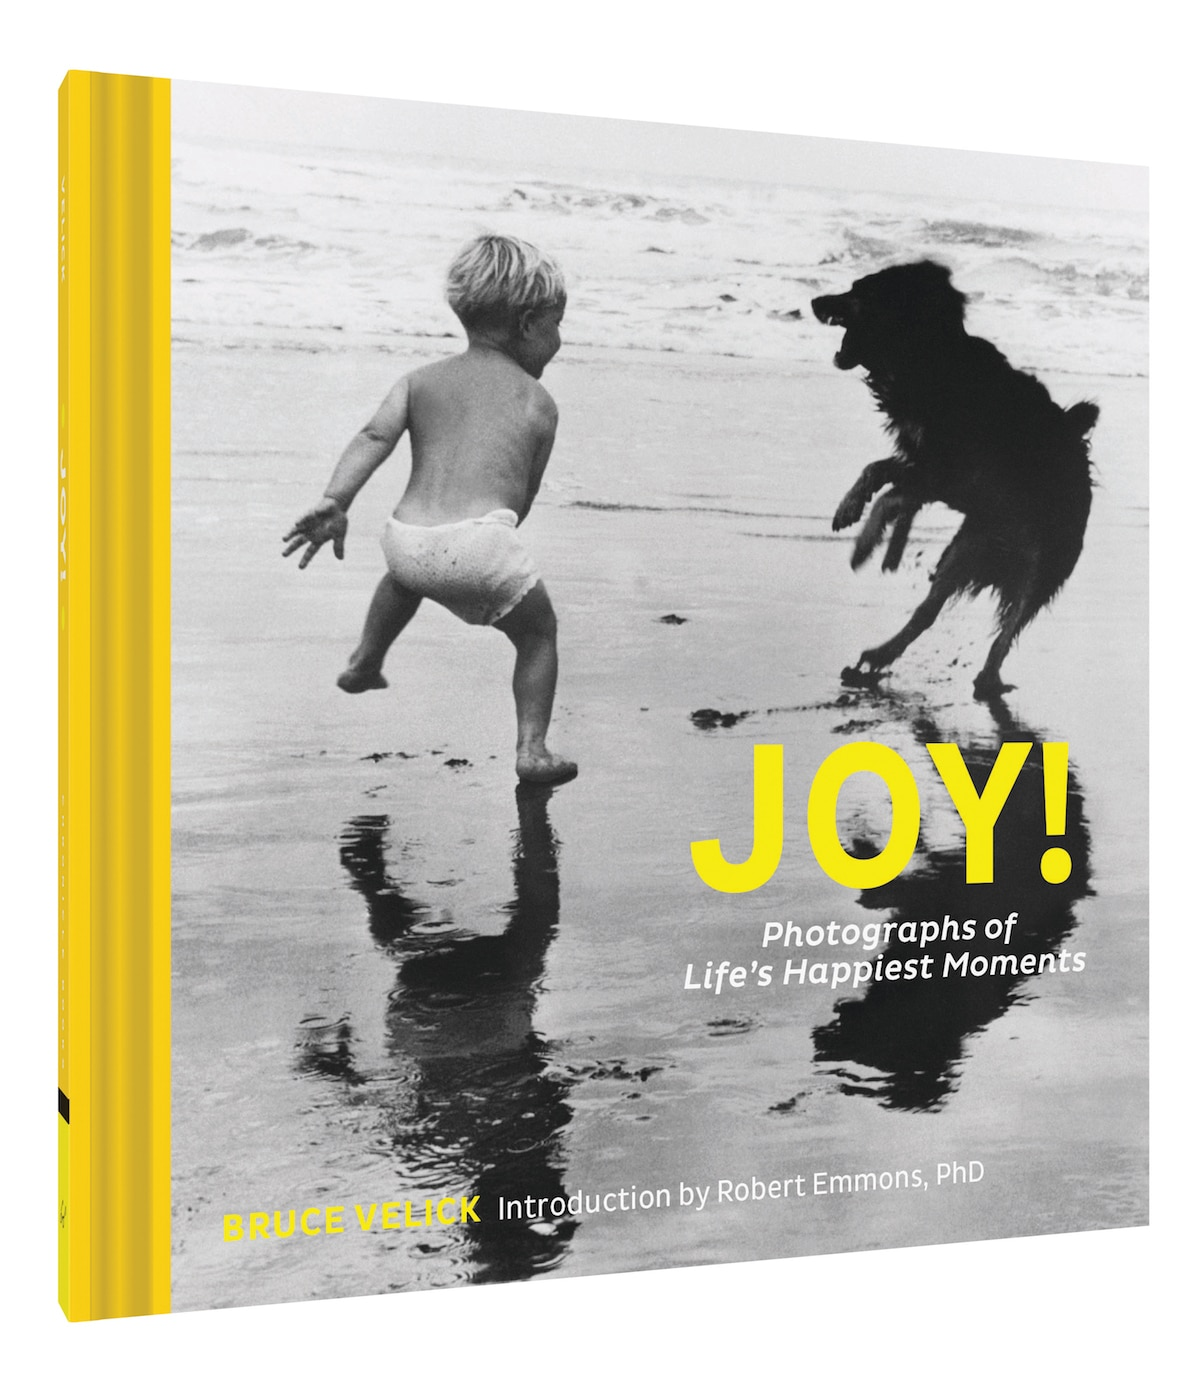 Joy Photographs of Life's Happiest Moments Joy libro fotos inspiradoras Robert Emmons Bruce Vellick